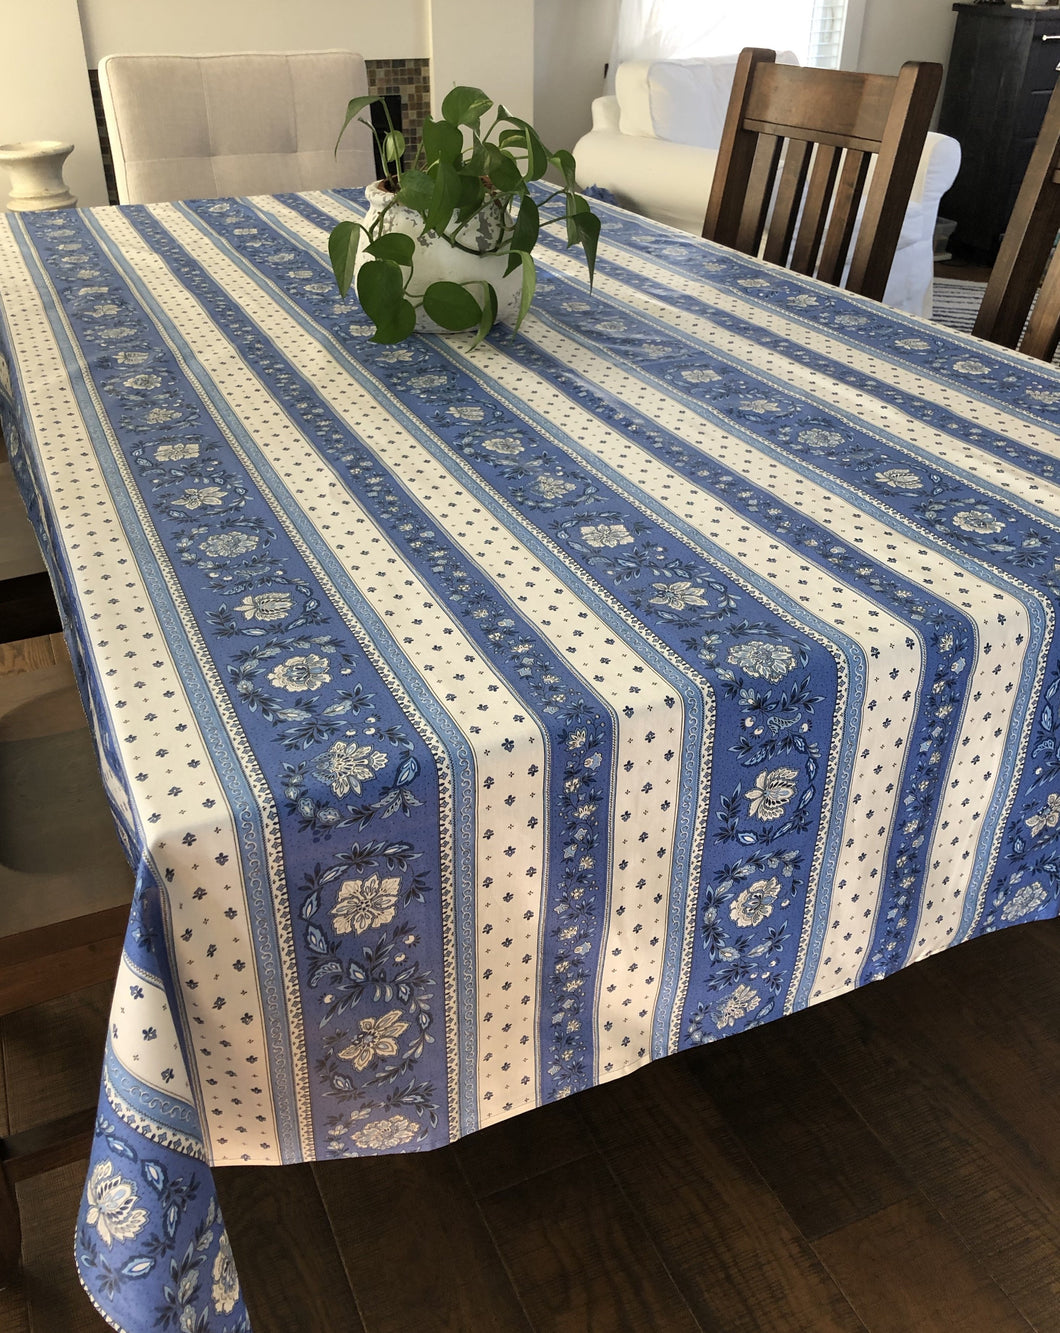 Vence Rectangular Tablecloth - Coated Cotton - Blue/White